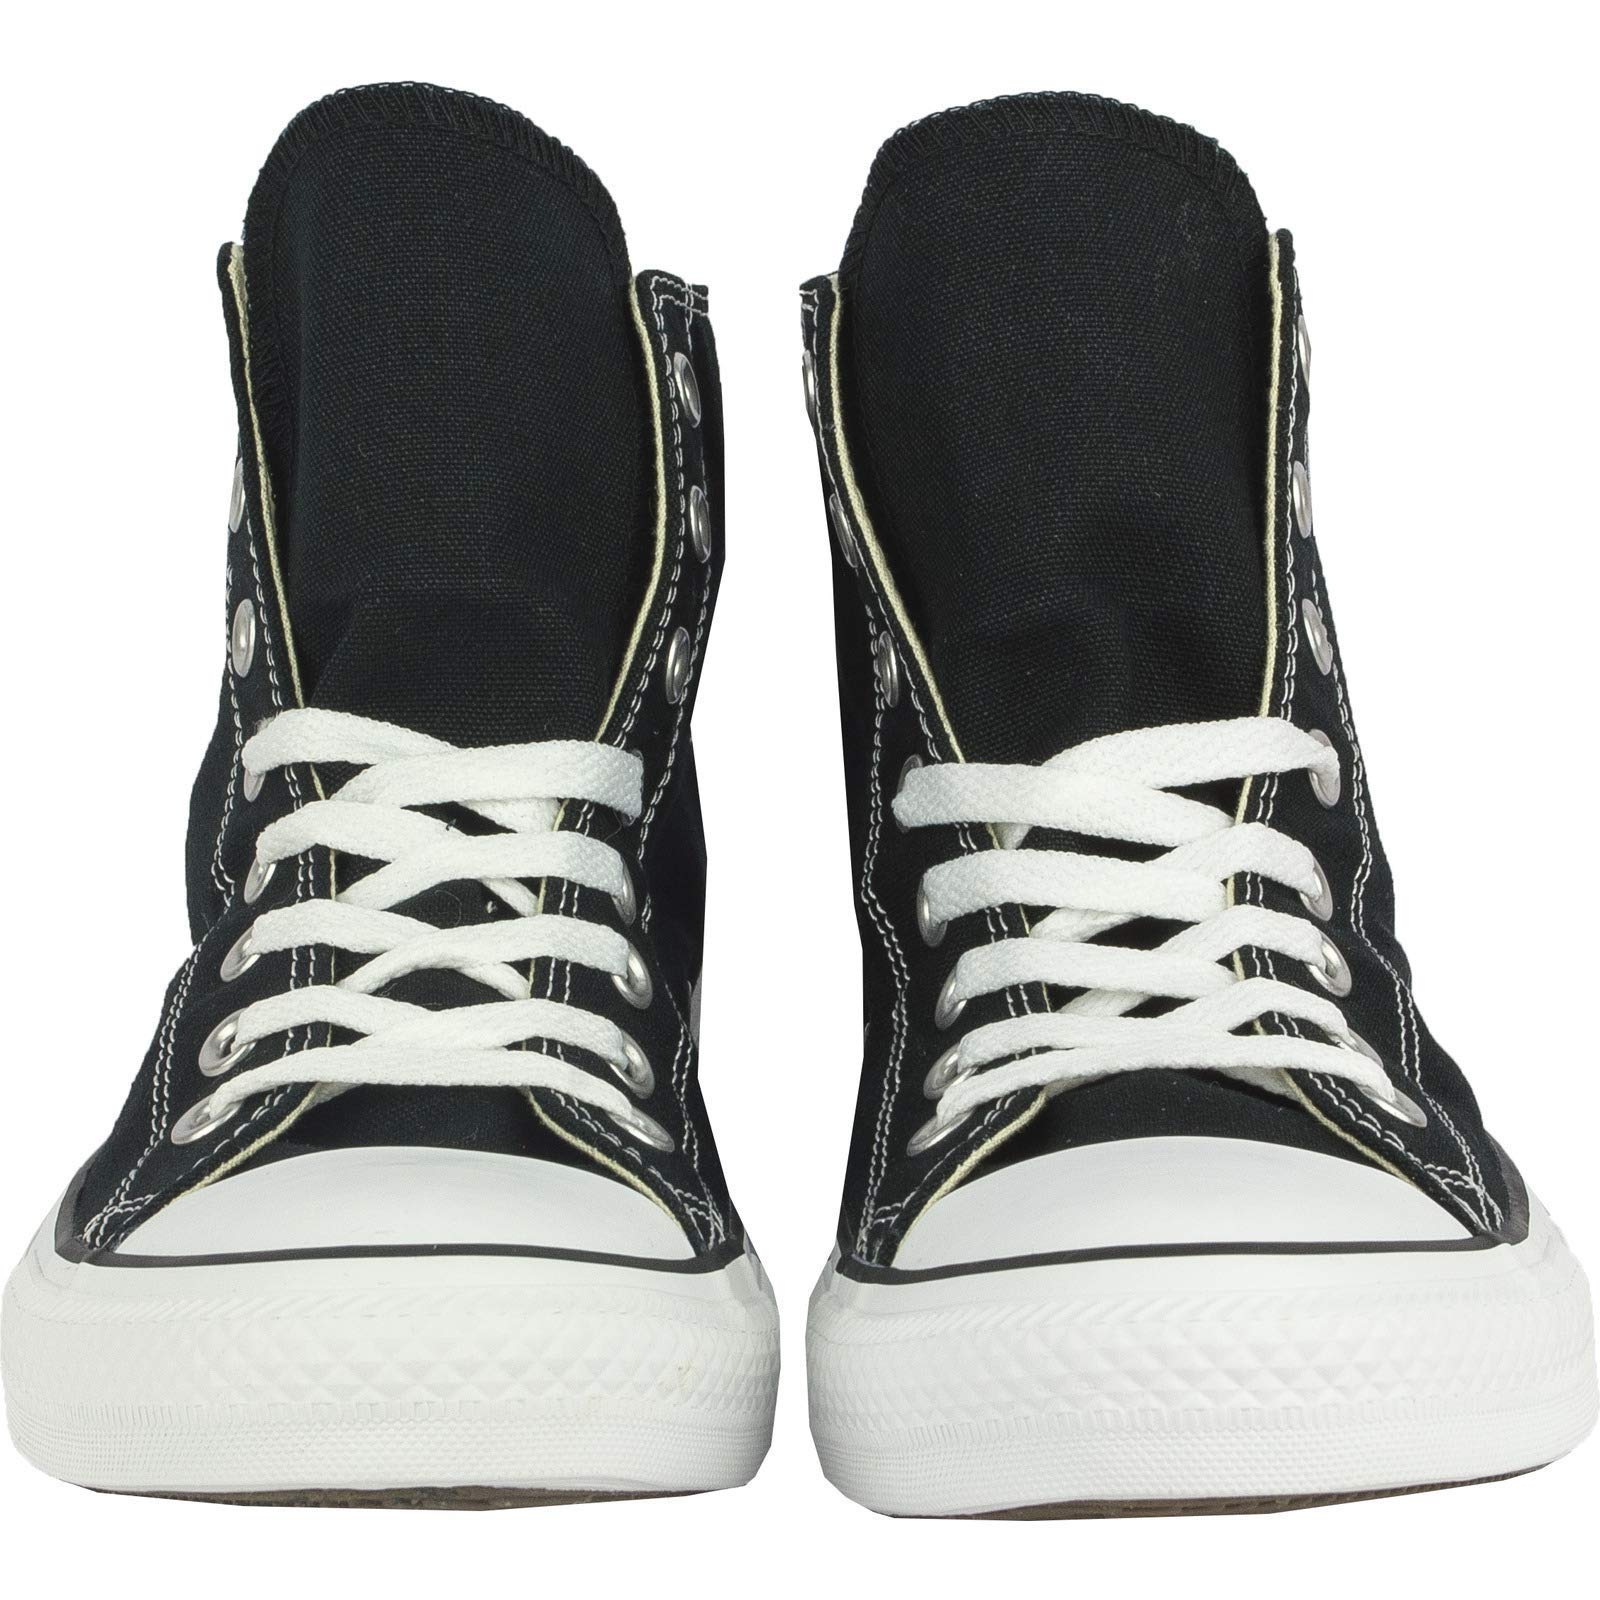 Chuck Taylor All Star Canvas High Top, Black, 4 M US by Converse (Image #8)